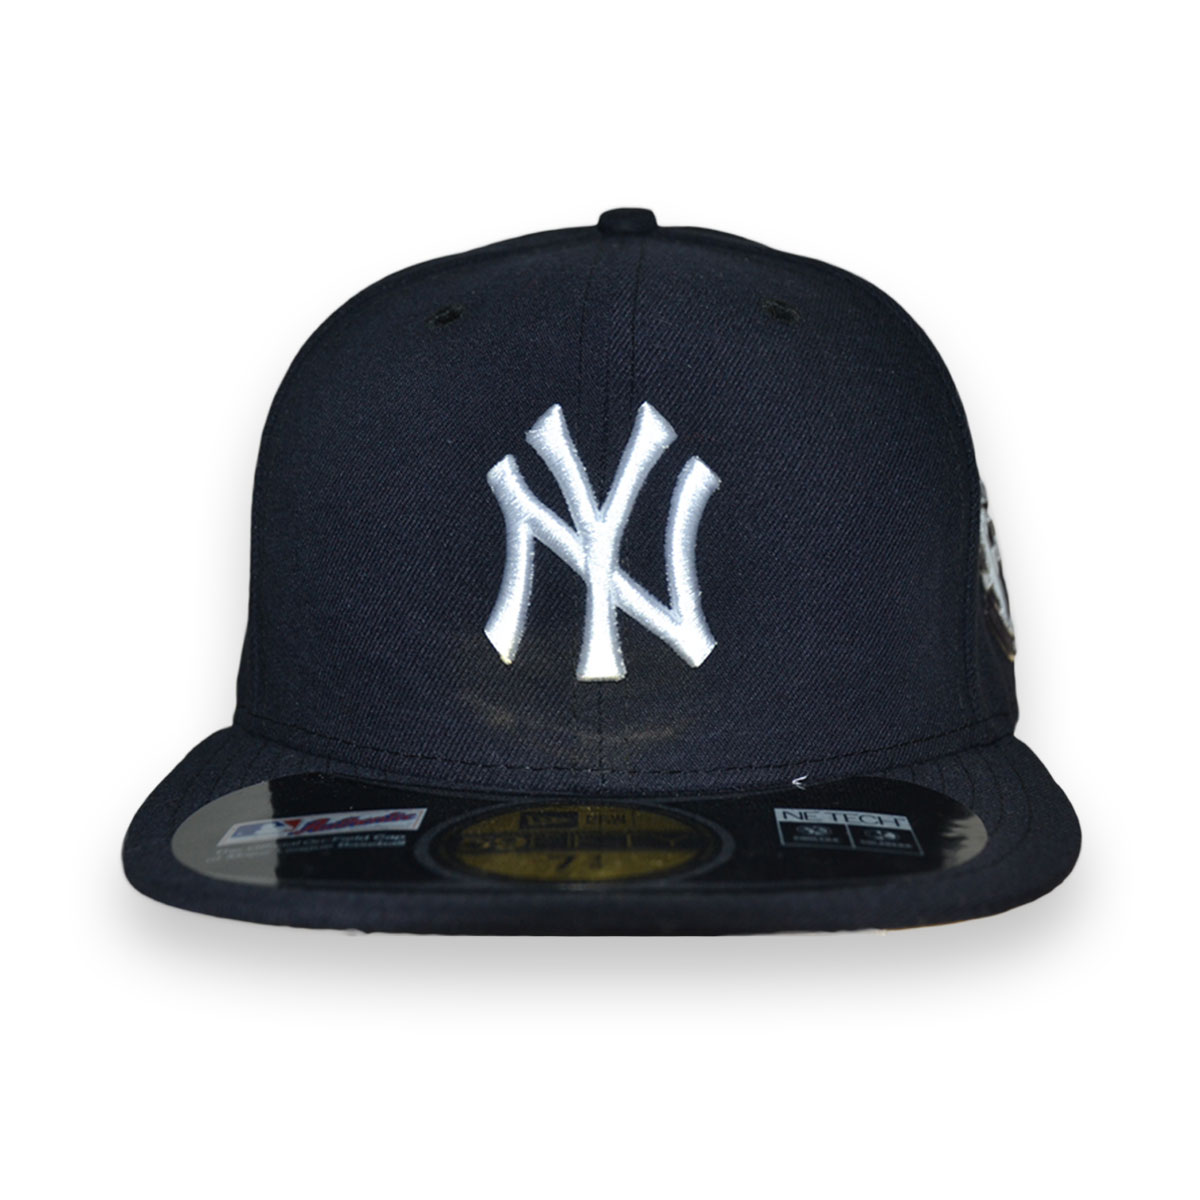 NEW ERA NEW YORK YANKEES NAVY DEREK JETER BASEBALL CAP - MyCraze b3321bcd0bb